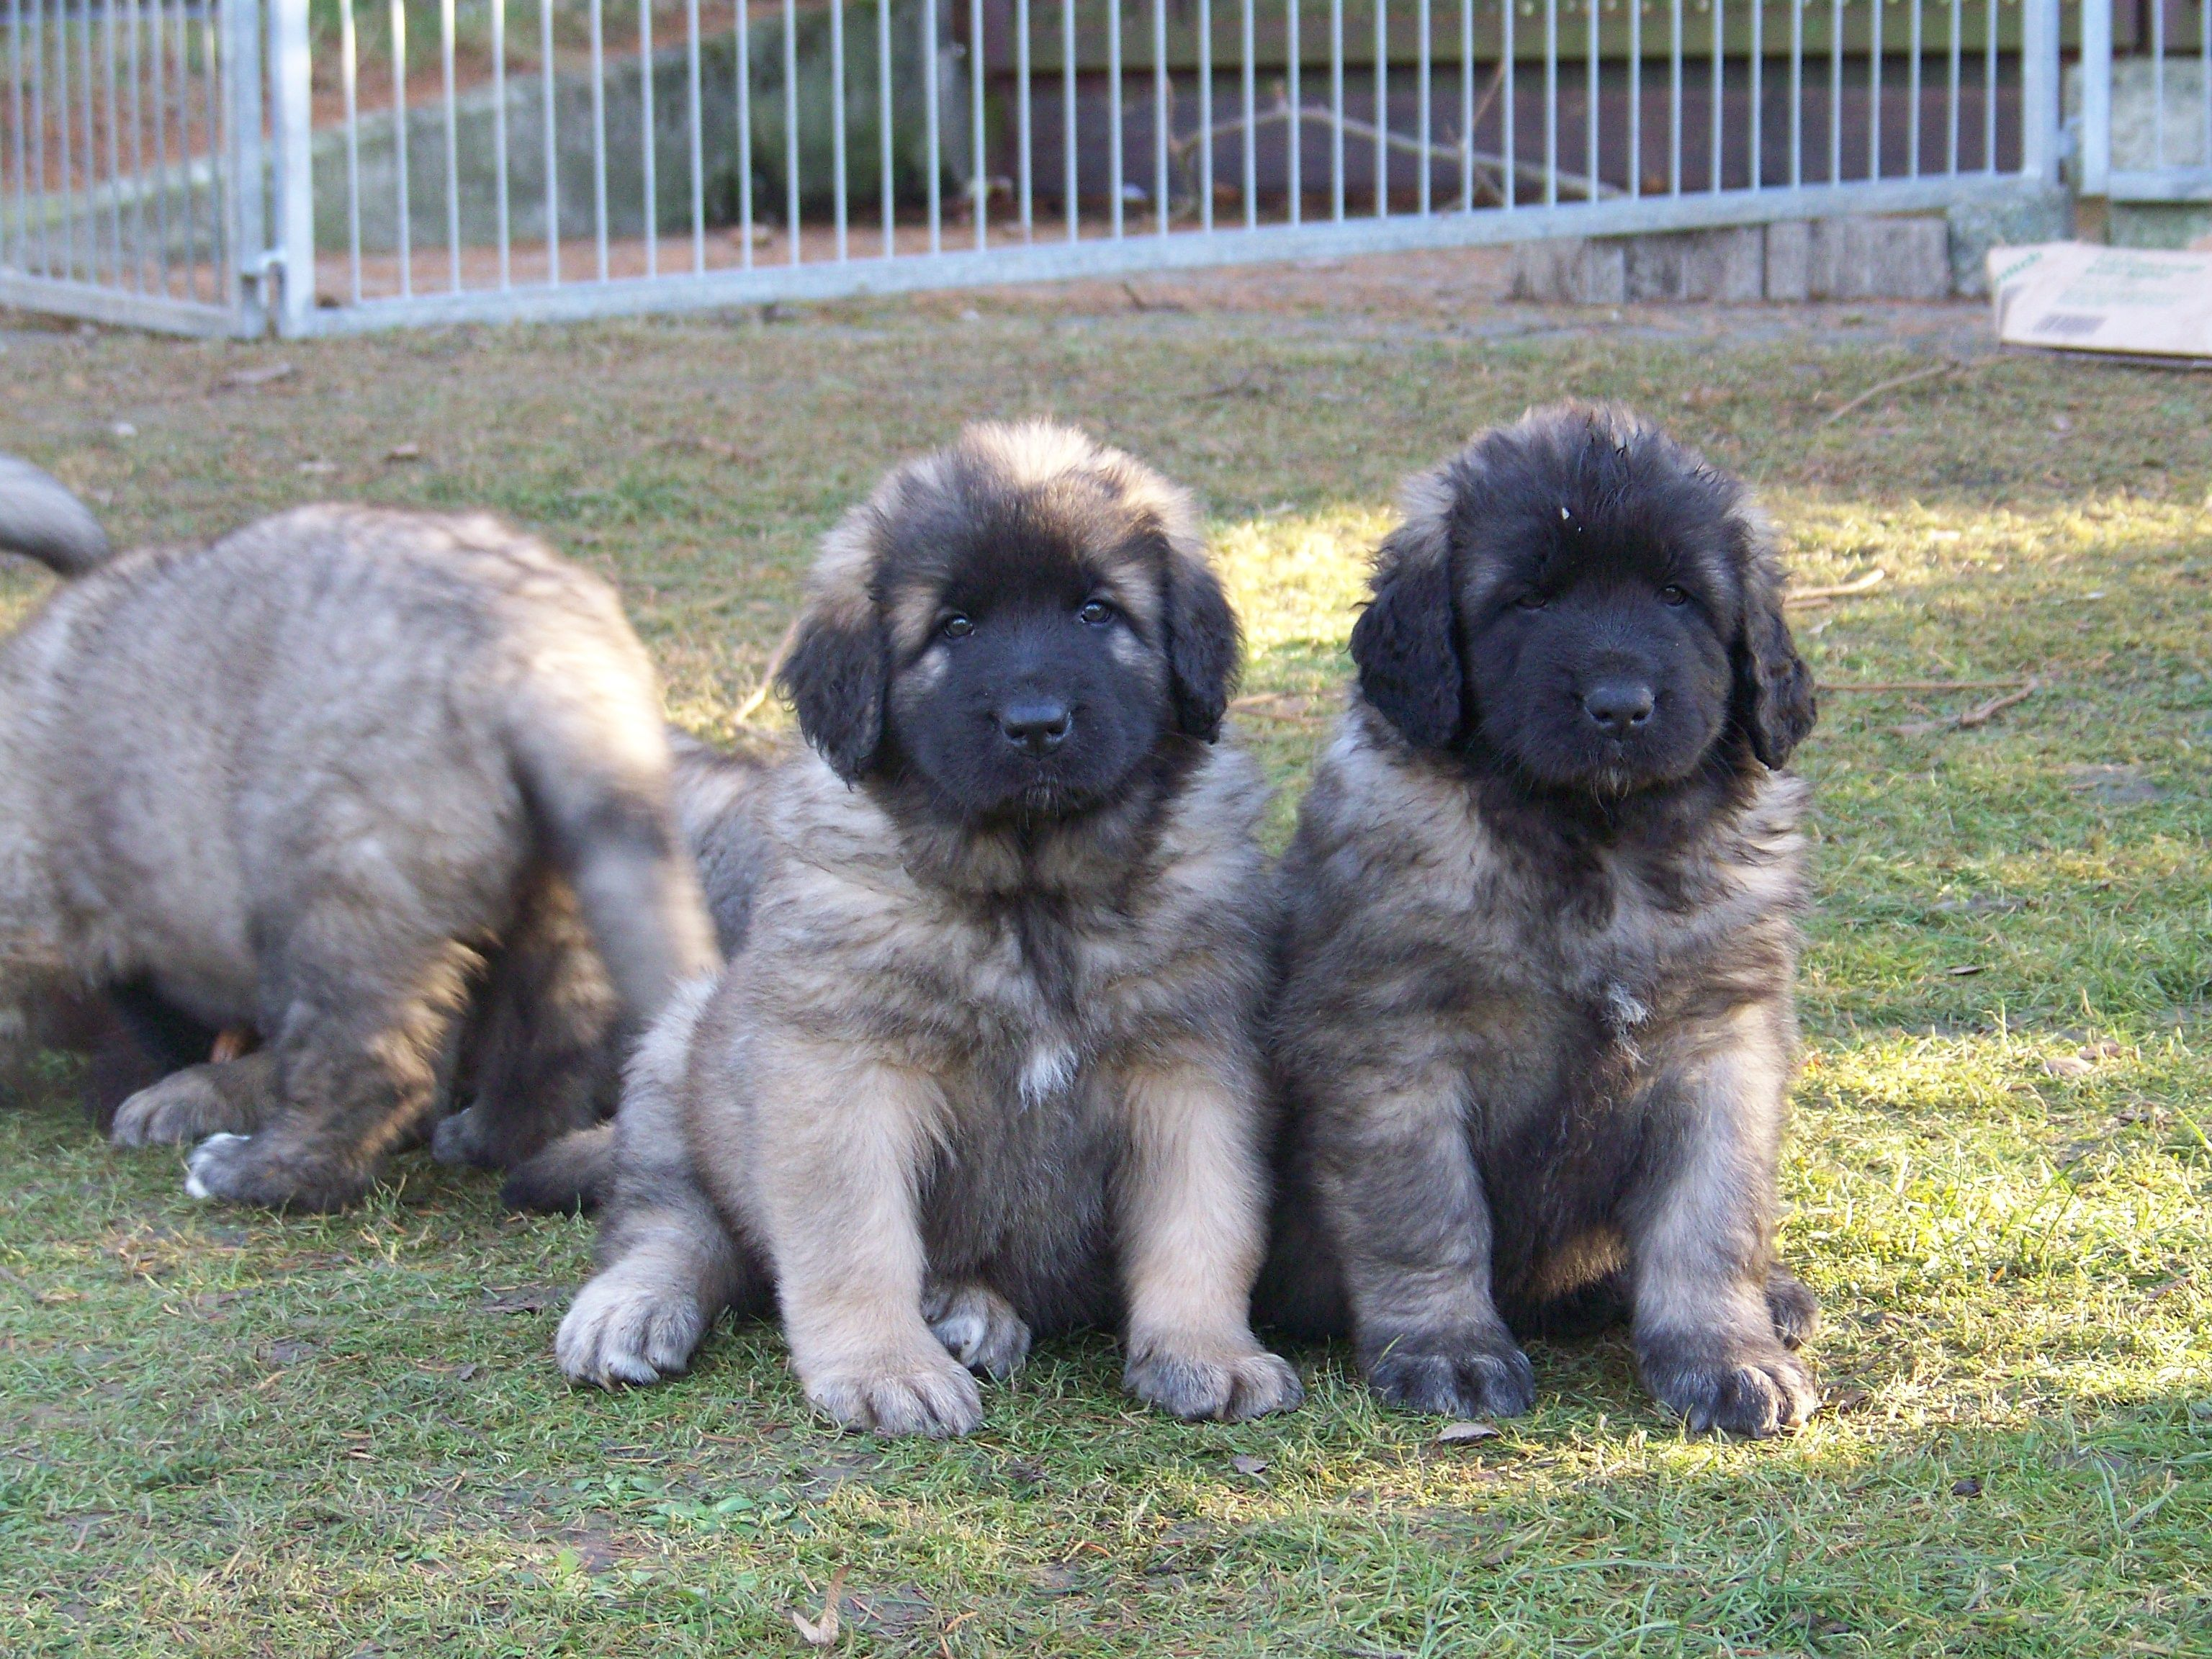 leonberger puppies. So squeezy! Leonberger puppy